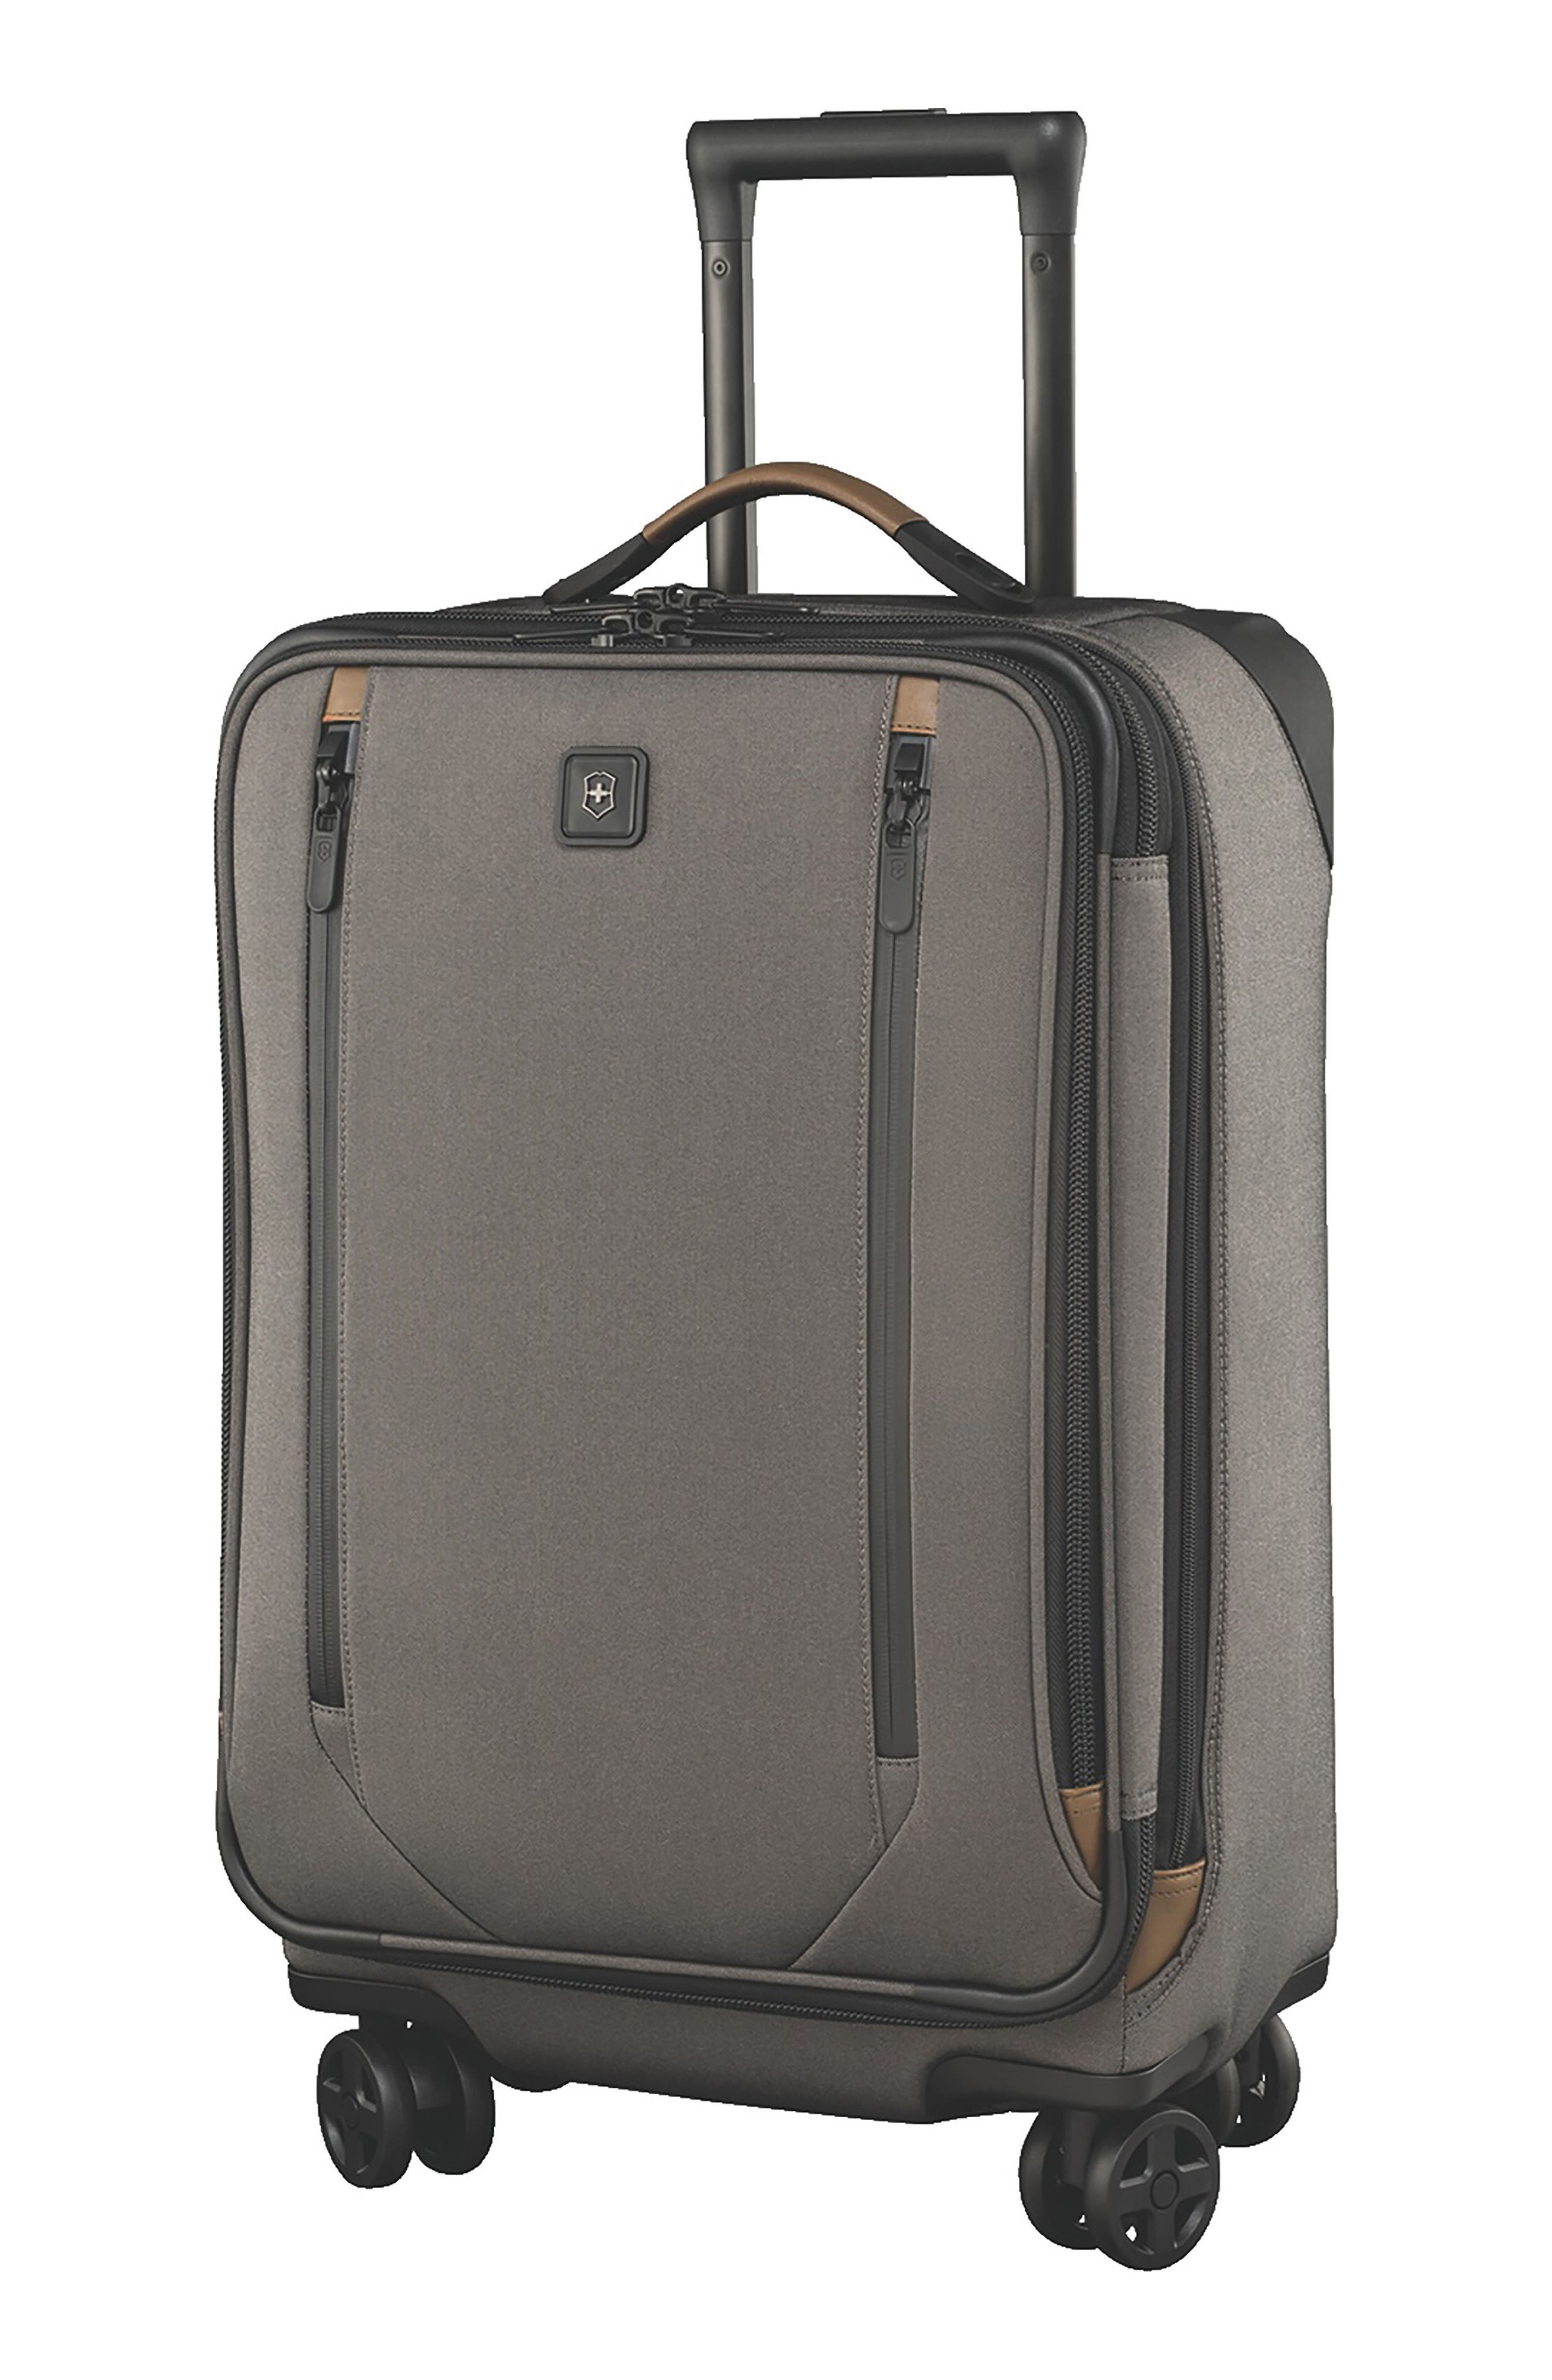 Victorinox Swiss Army® Lexicon 2.0 24 Inch Wheeled Suitcase